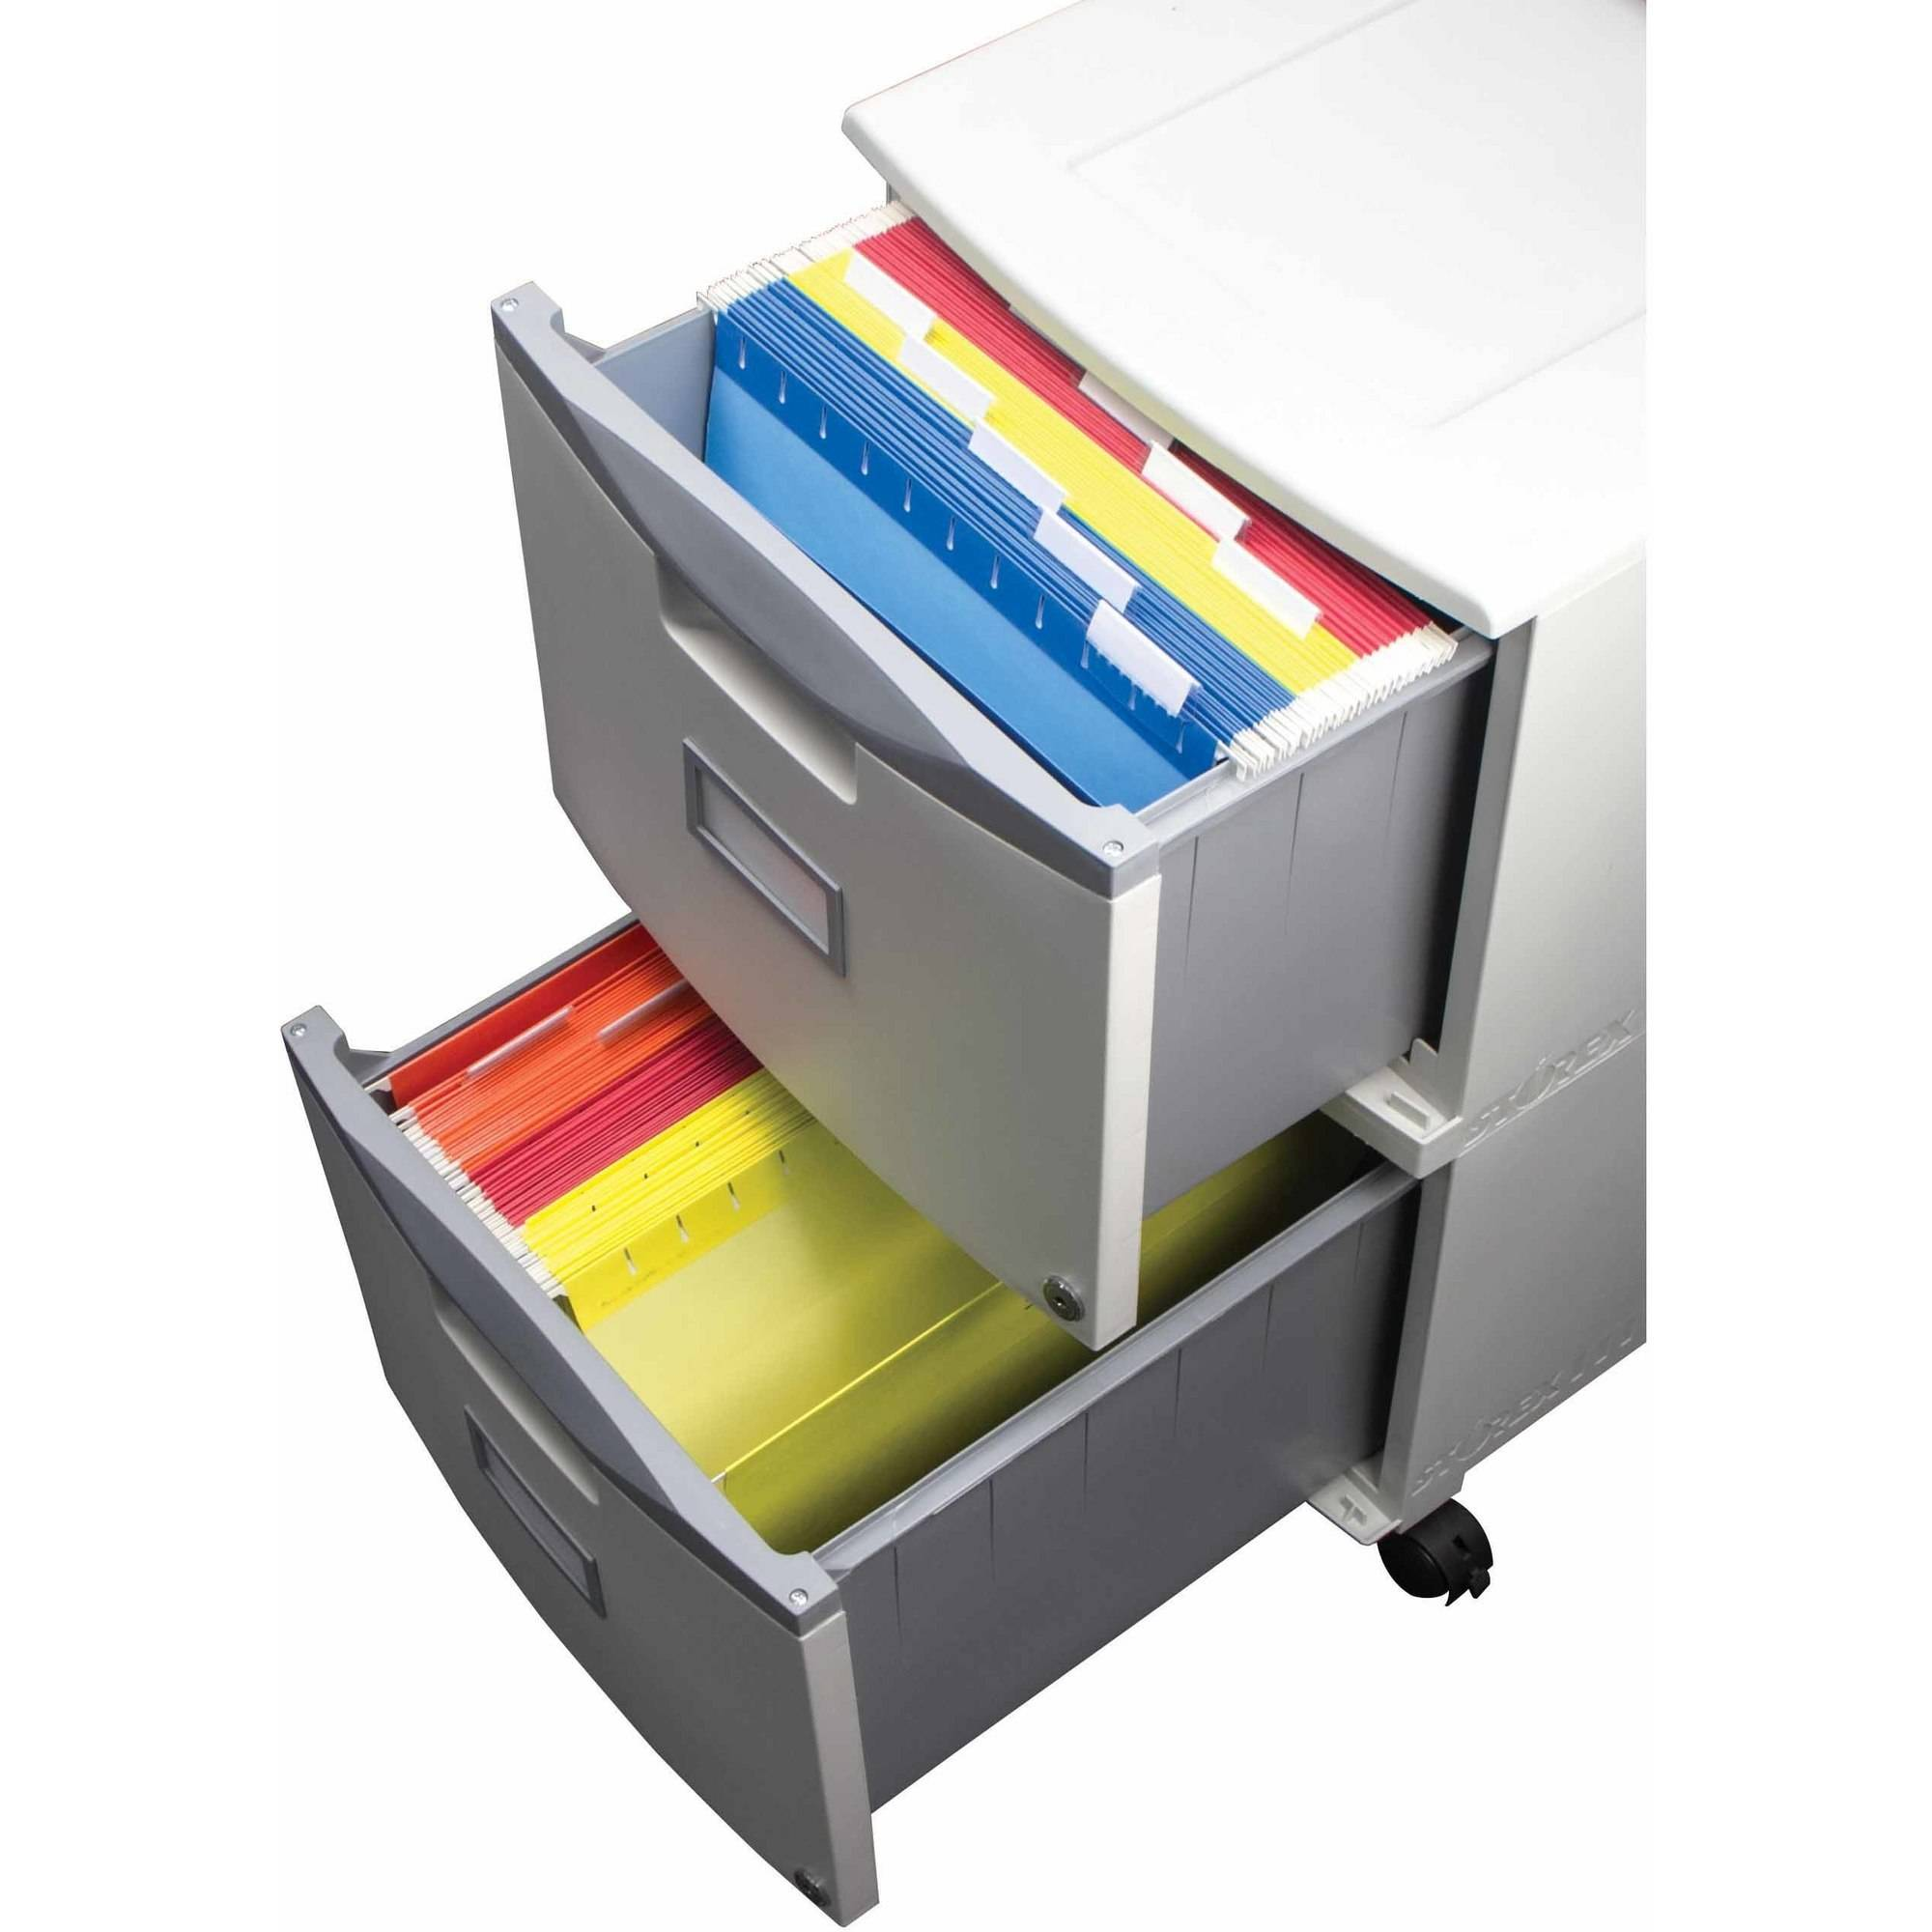 Storex 2 Drawer Mobile File Cabinet With Lock and Casters Legal